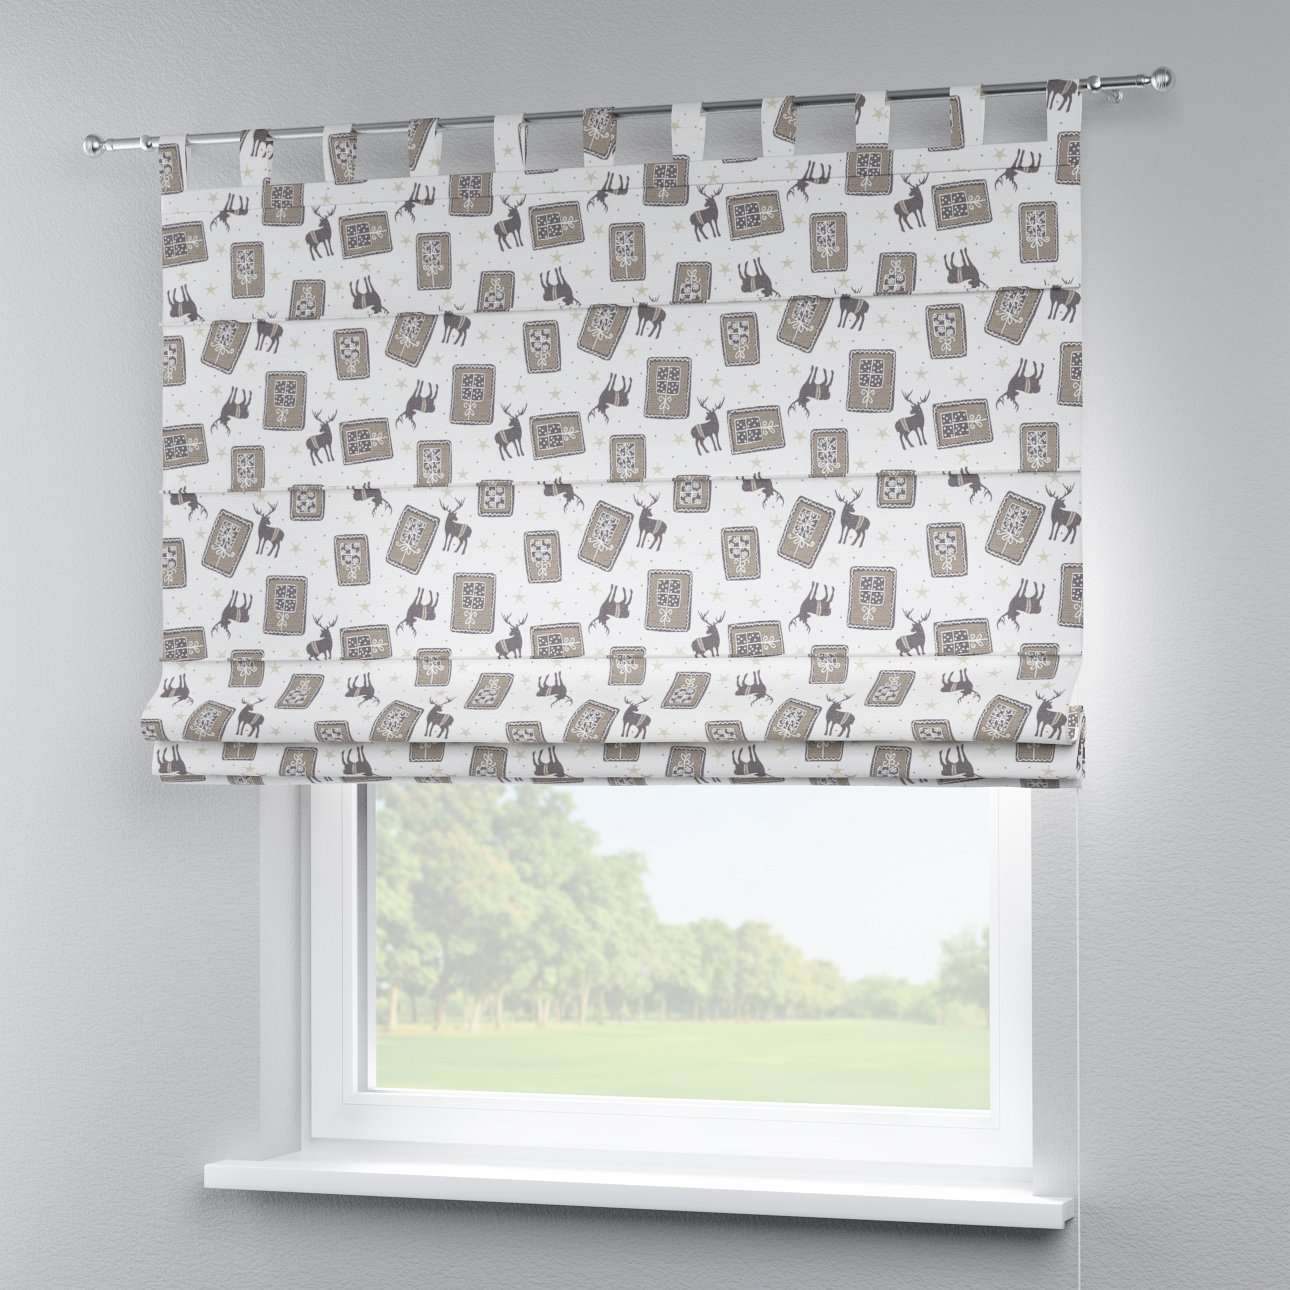 Verona tab top roman blind 80 x 170 cm (31.5 x 67 inch) in collection Christmas , fabric: 630-10